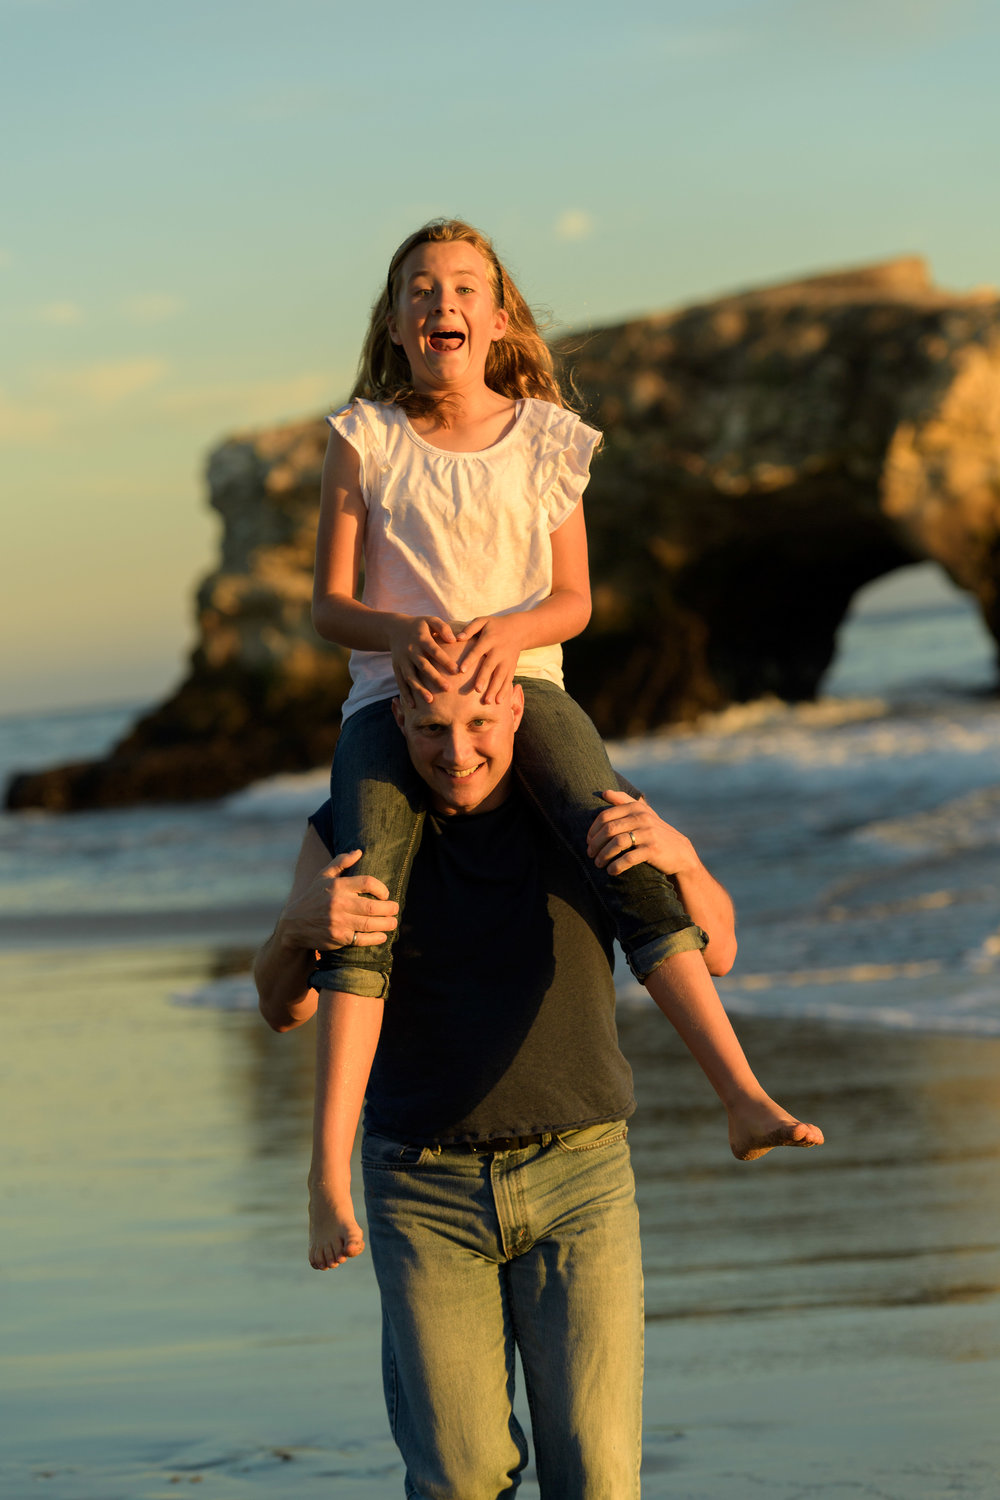 6379_Carrie_K_Natural_Bridges_Santa_Cruz_Family_Photography.jpg